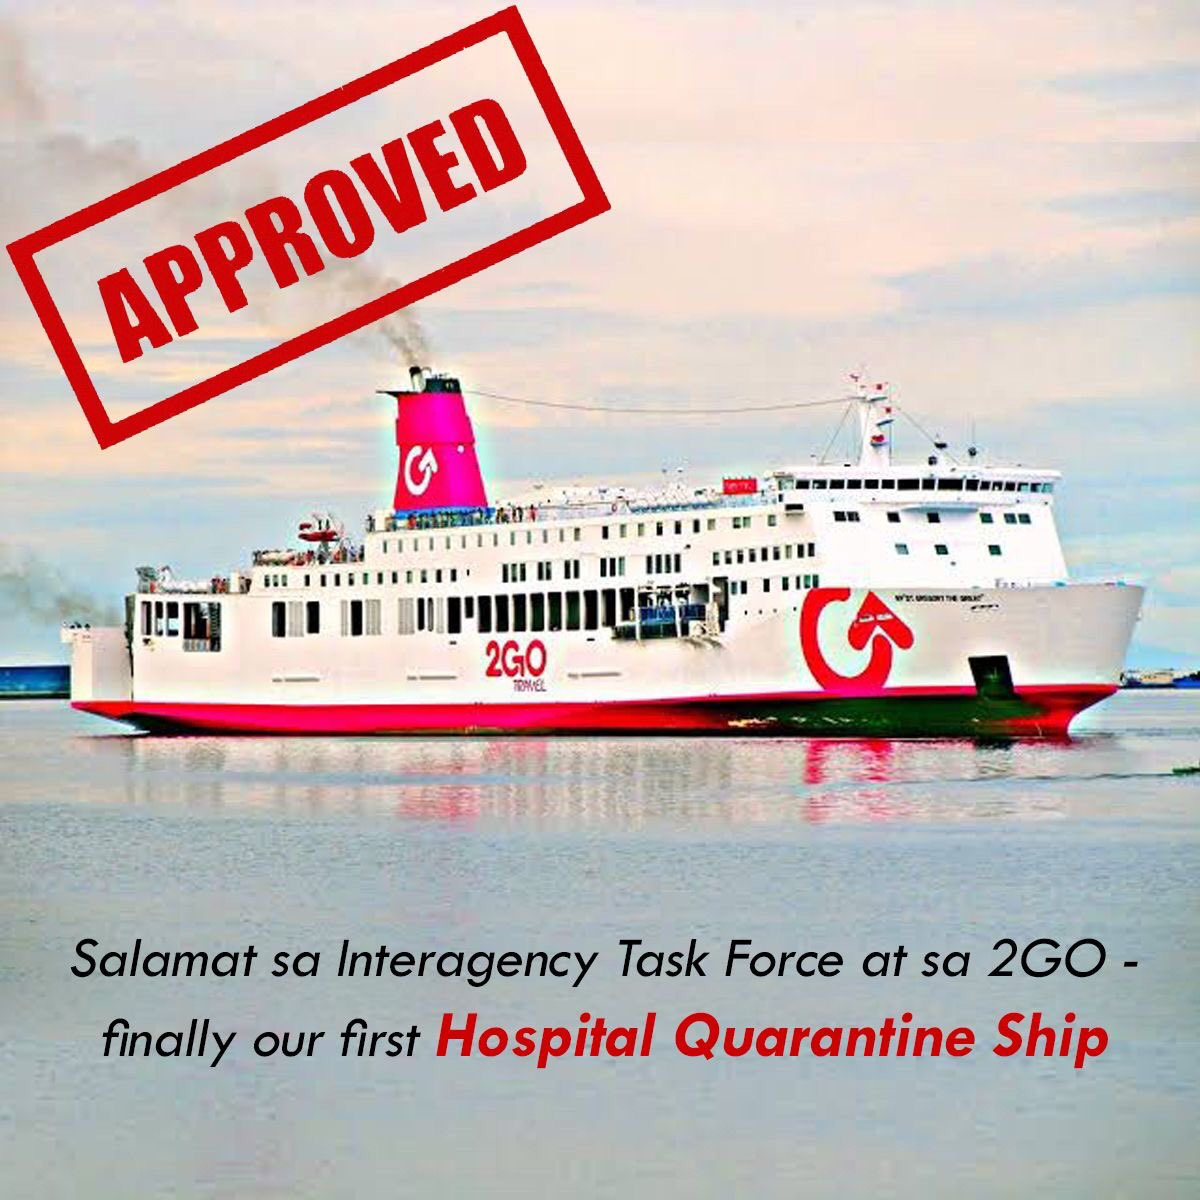 JUST IN: Sen. Francis Tolentino says the first hospital quarantine ship will dock in Port of Manila next week. | via @mavgonzales<br>http://pic.twitter.com/ilkwiqXxhn